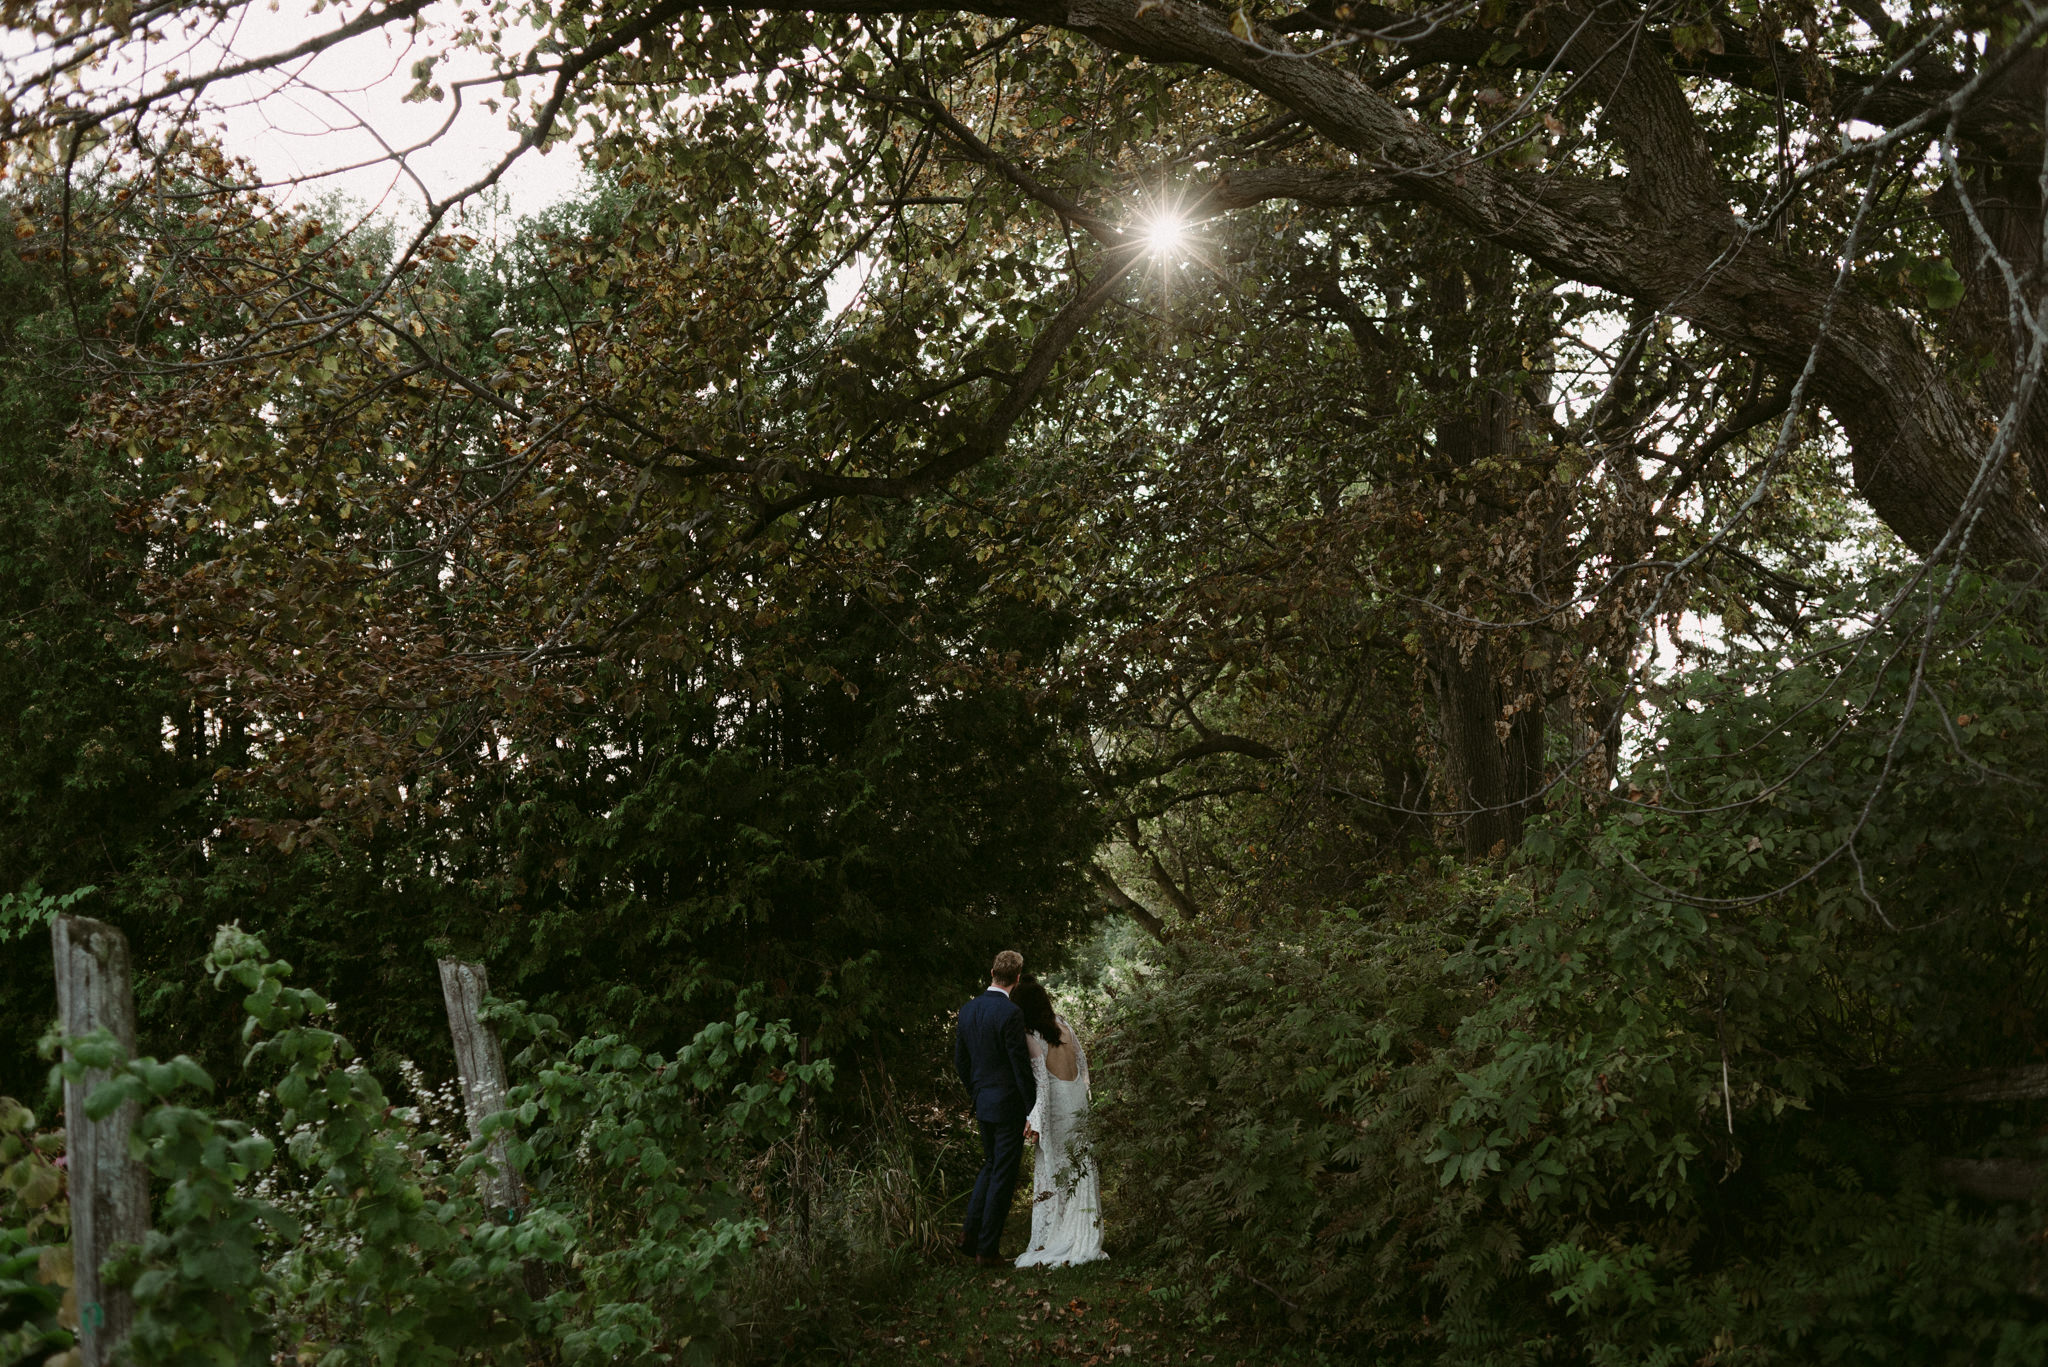 Bride and groom standing in lush garden with sun beaming through leaves